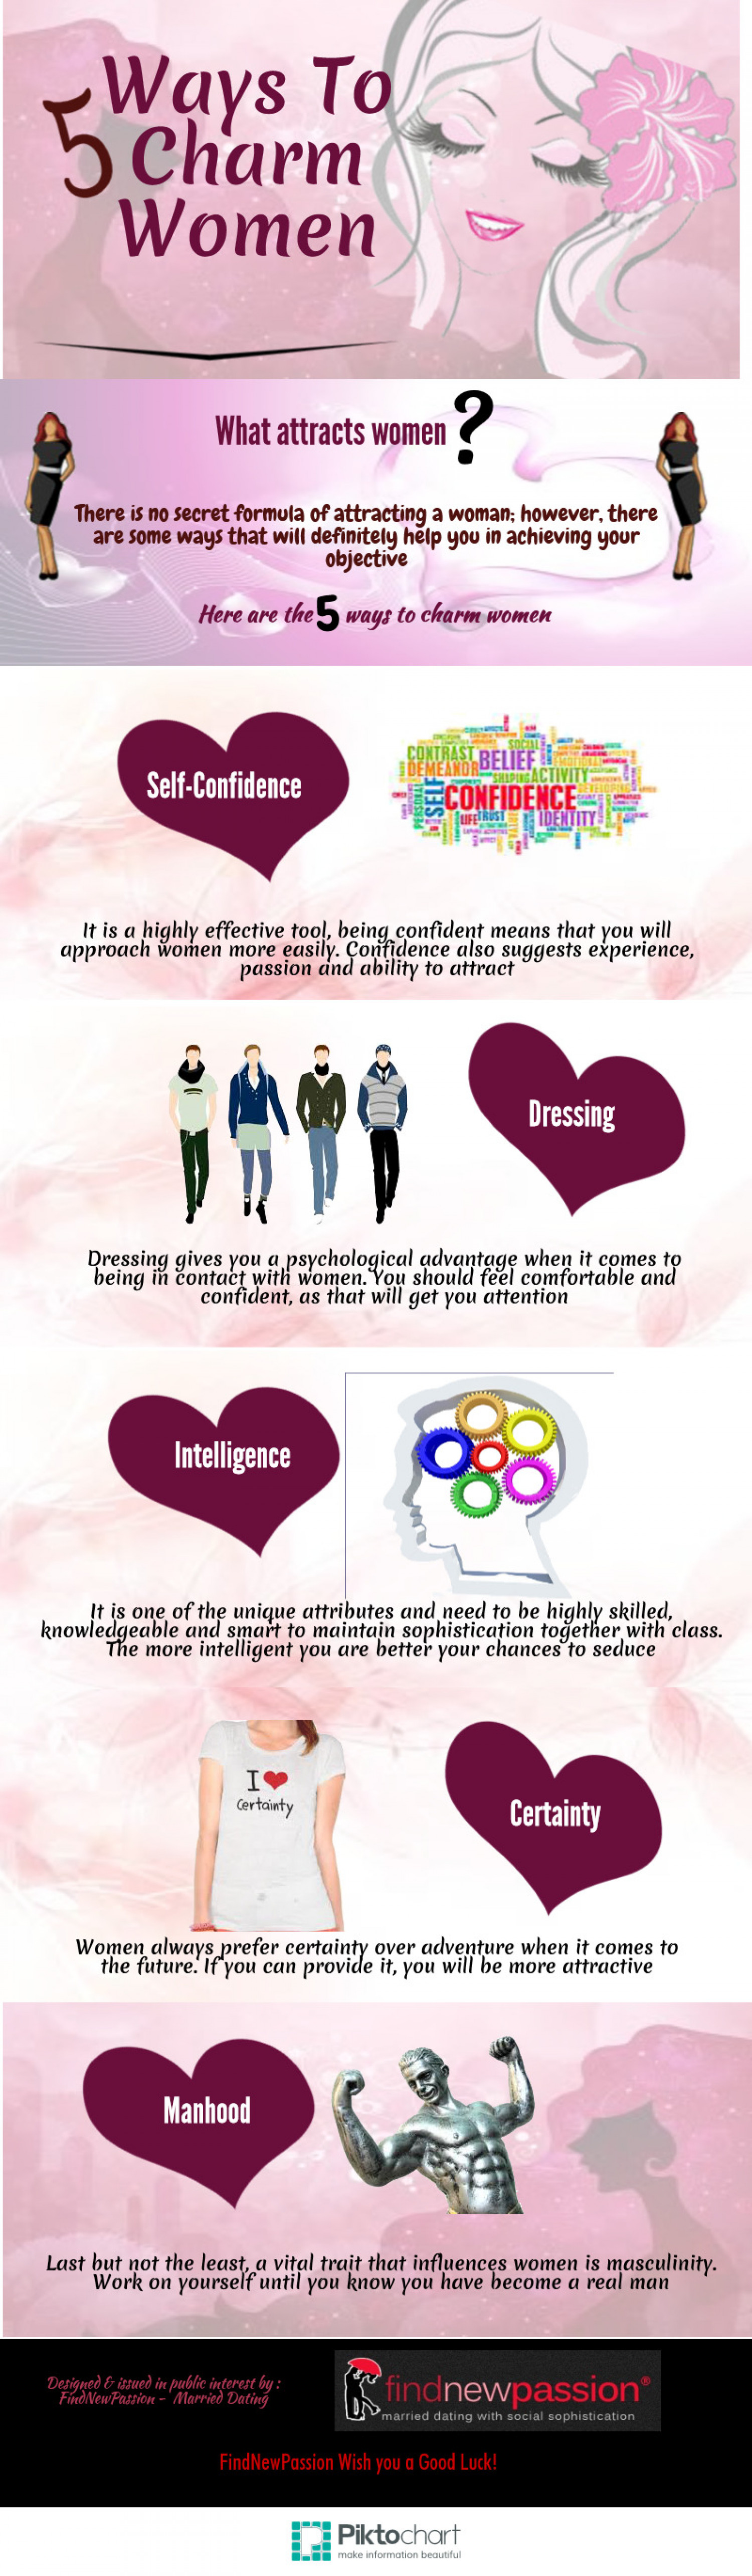 5 Ways To Charm Women Infographic